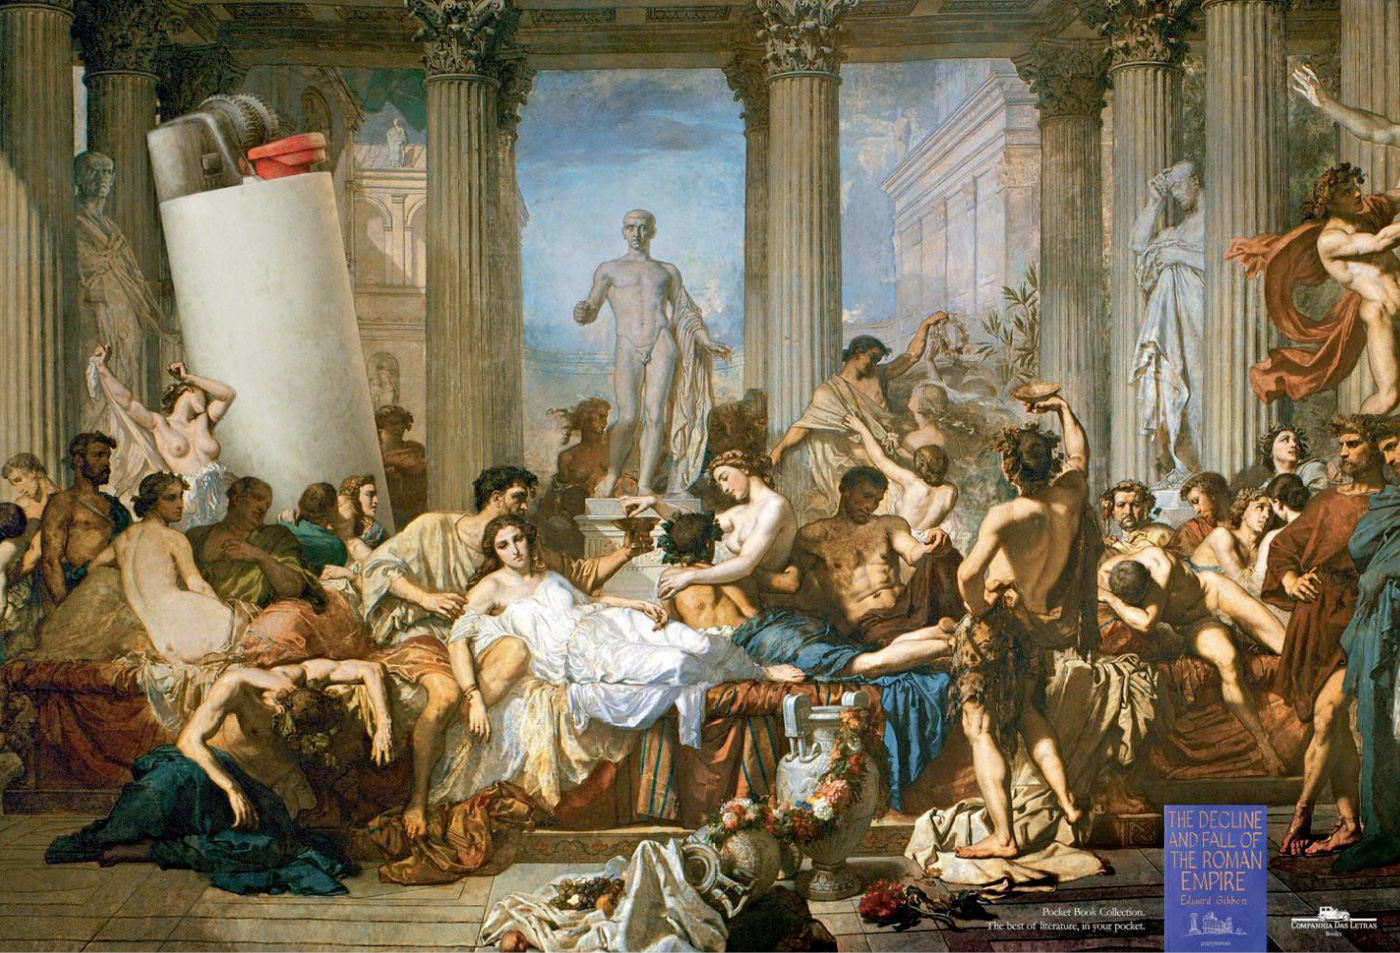 corruption and the decline of rome Rome's destruction began as a disease slowly disintegrating from the inside political corruption, the division of wealthy and poor, decline in moral - the decline of rome what were the most important reasons for the decline of the roman empire why the seemingly unstoppable roman empire was.